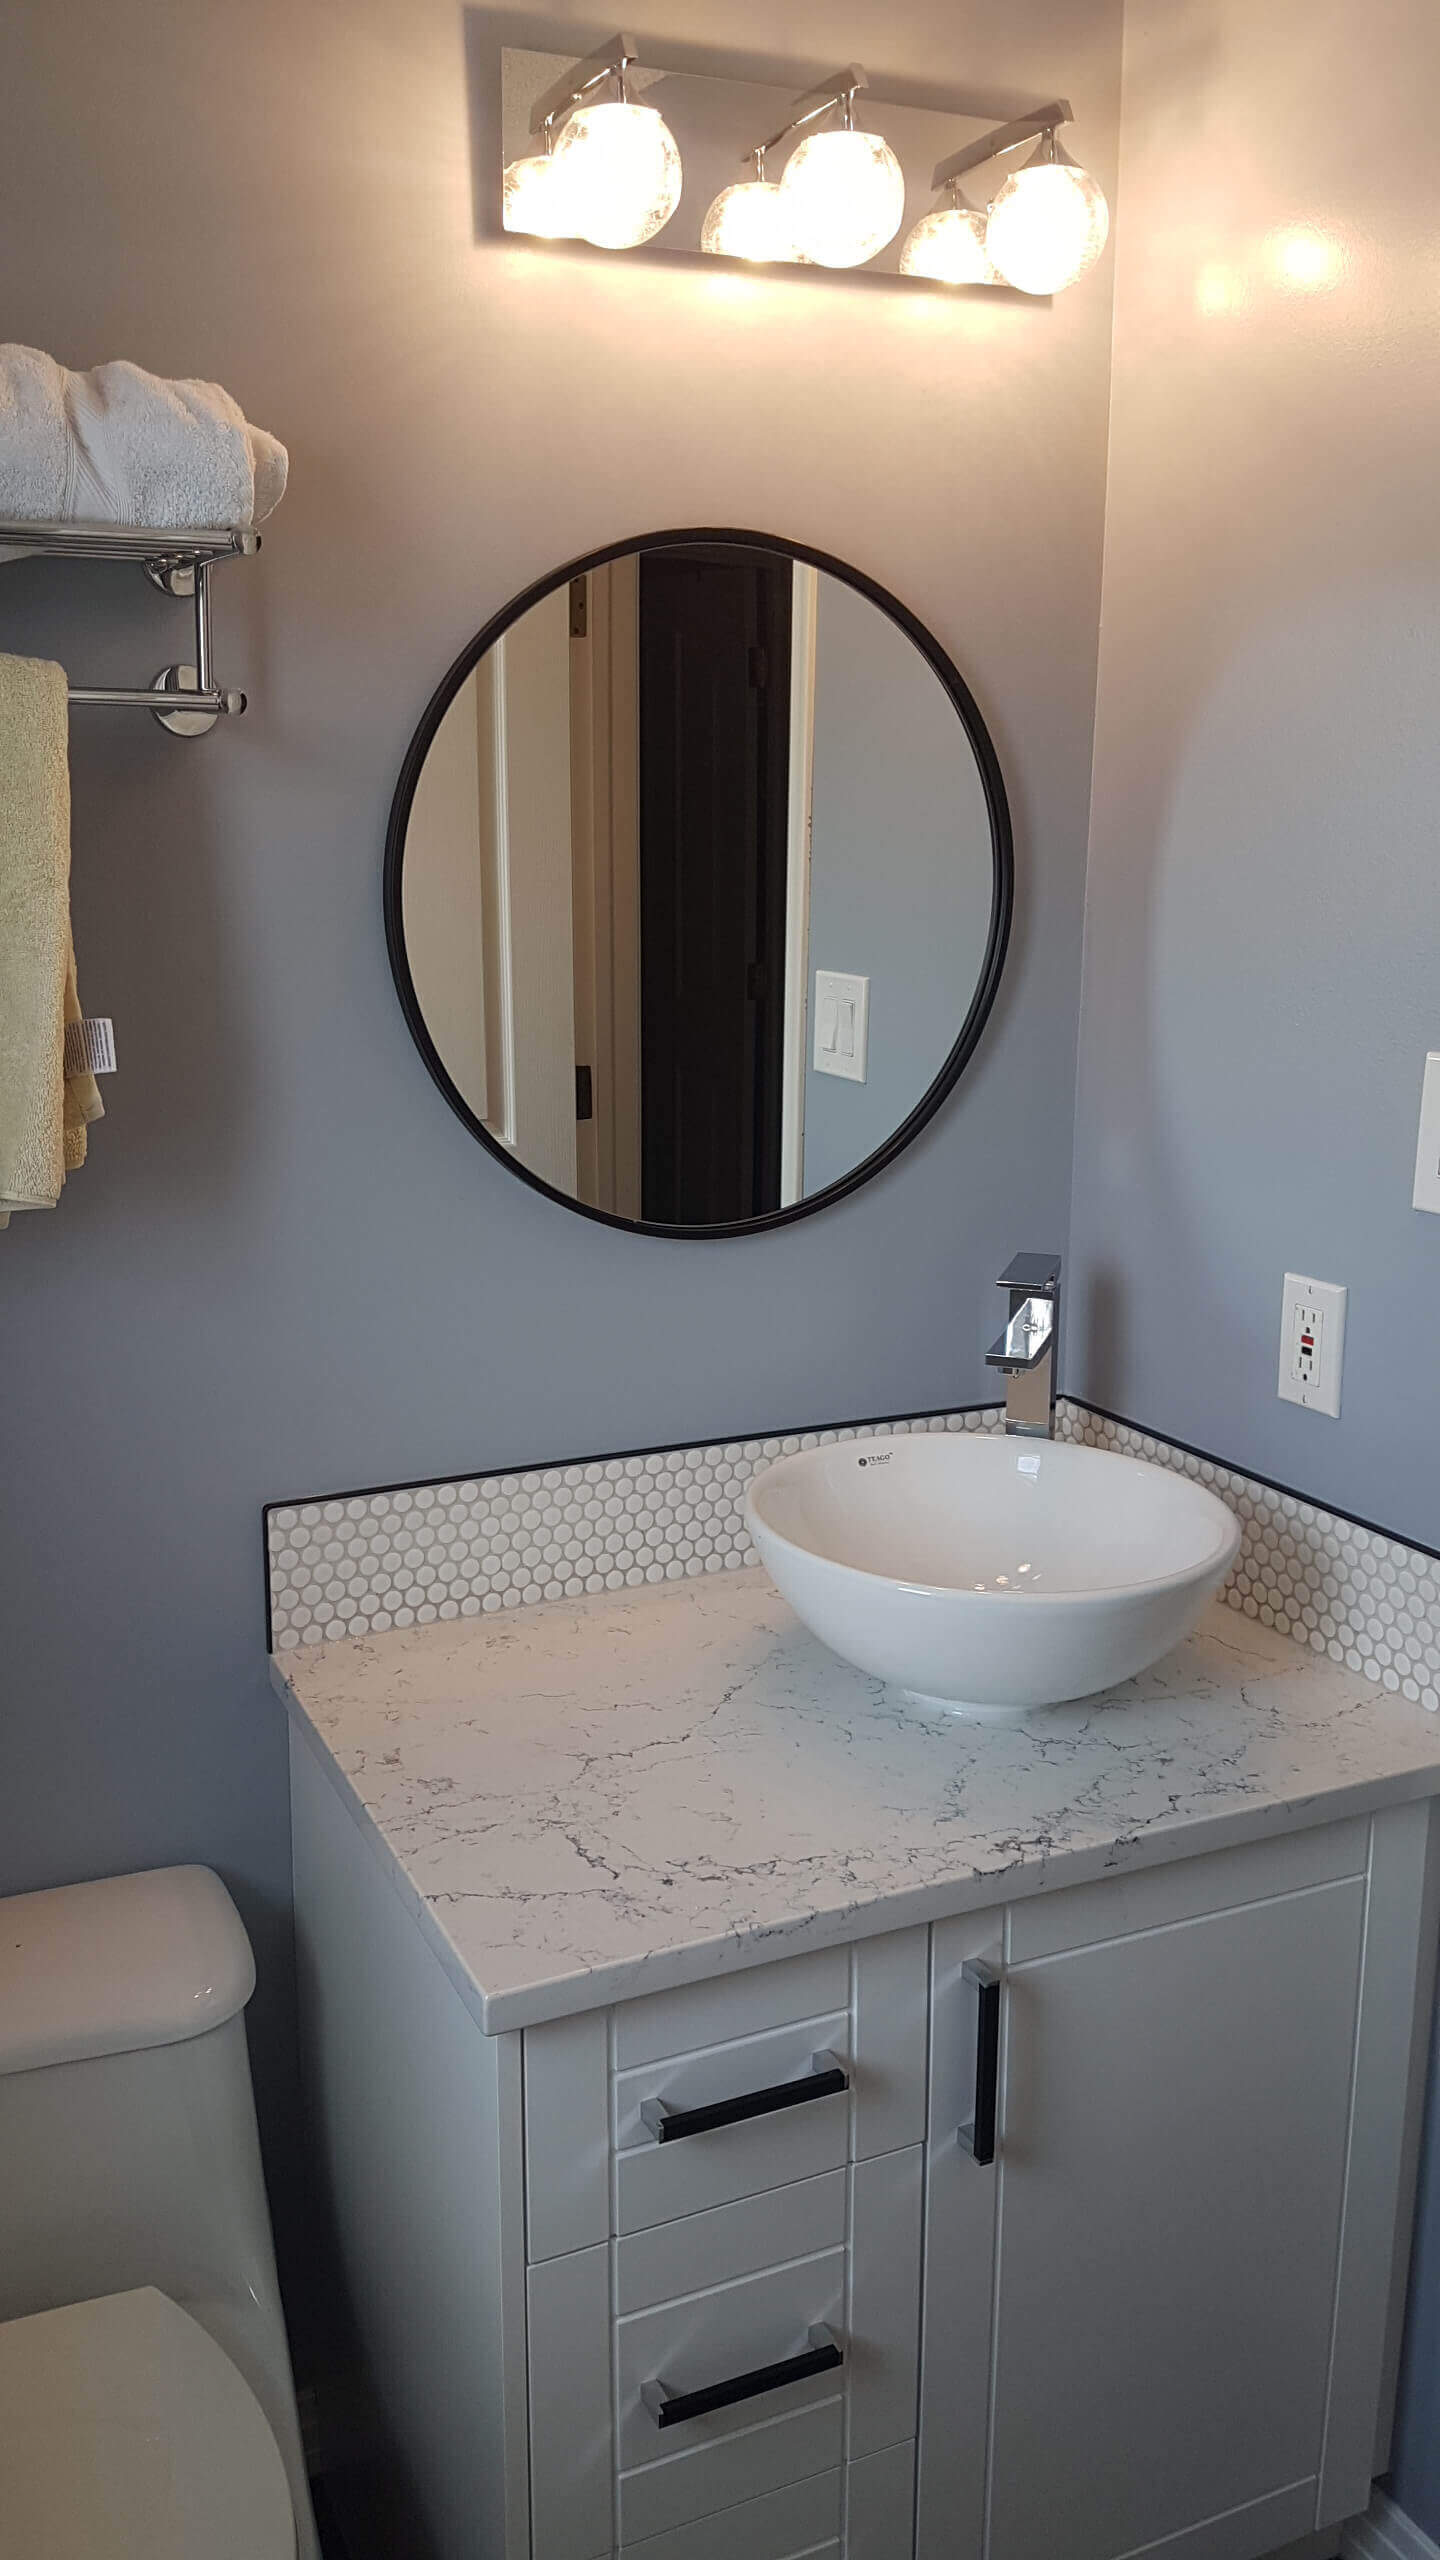 Home renovation half bathroom